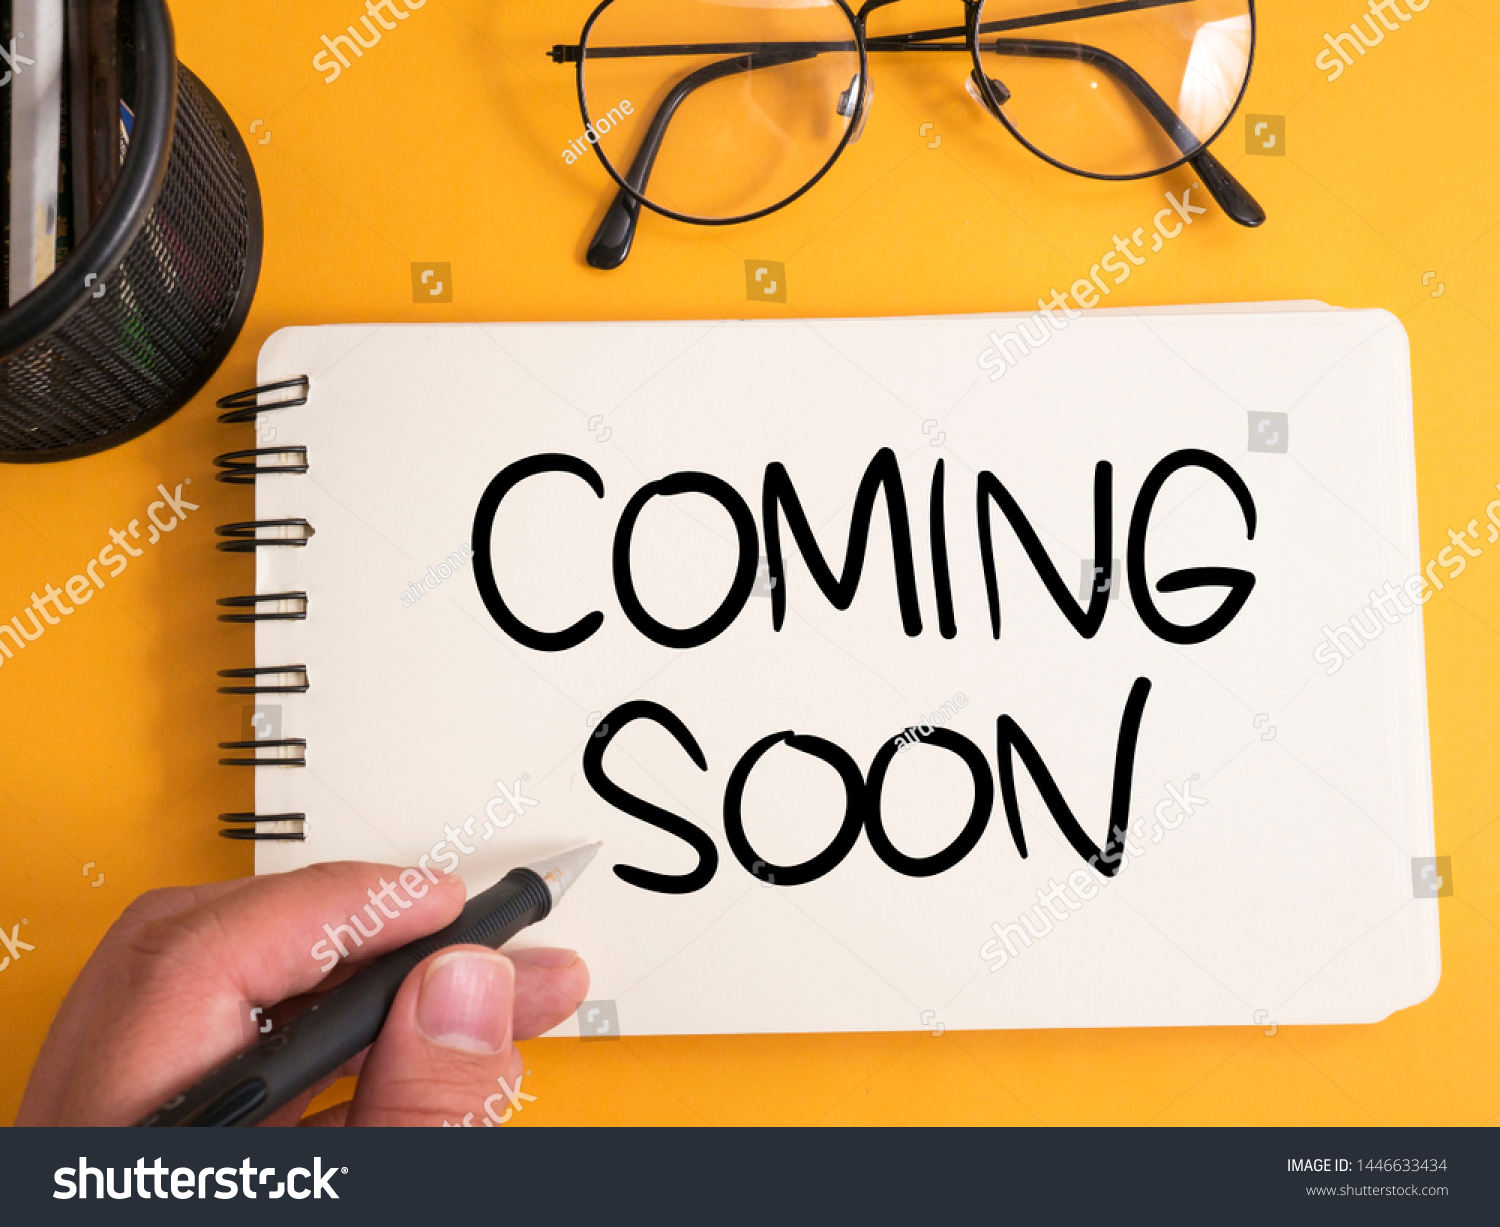 Coming Soon Motivational Inspirational Business Marketing Stock Photo Edit Now 1446633434